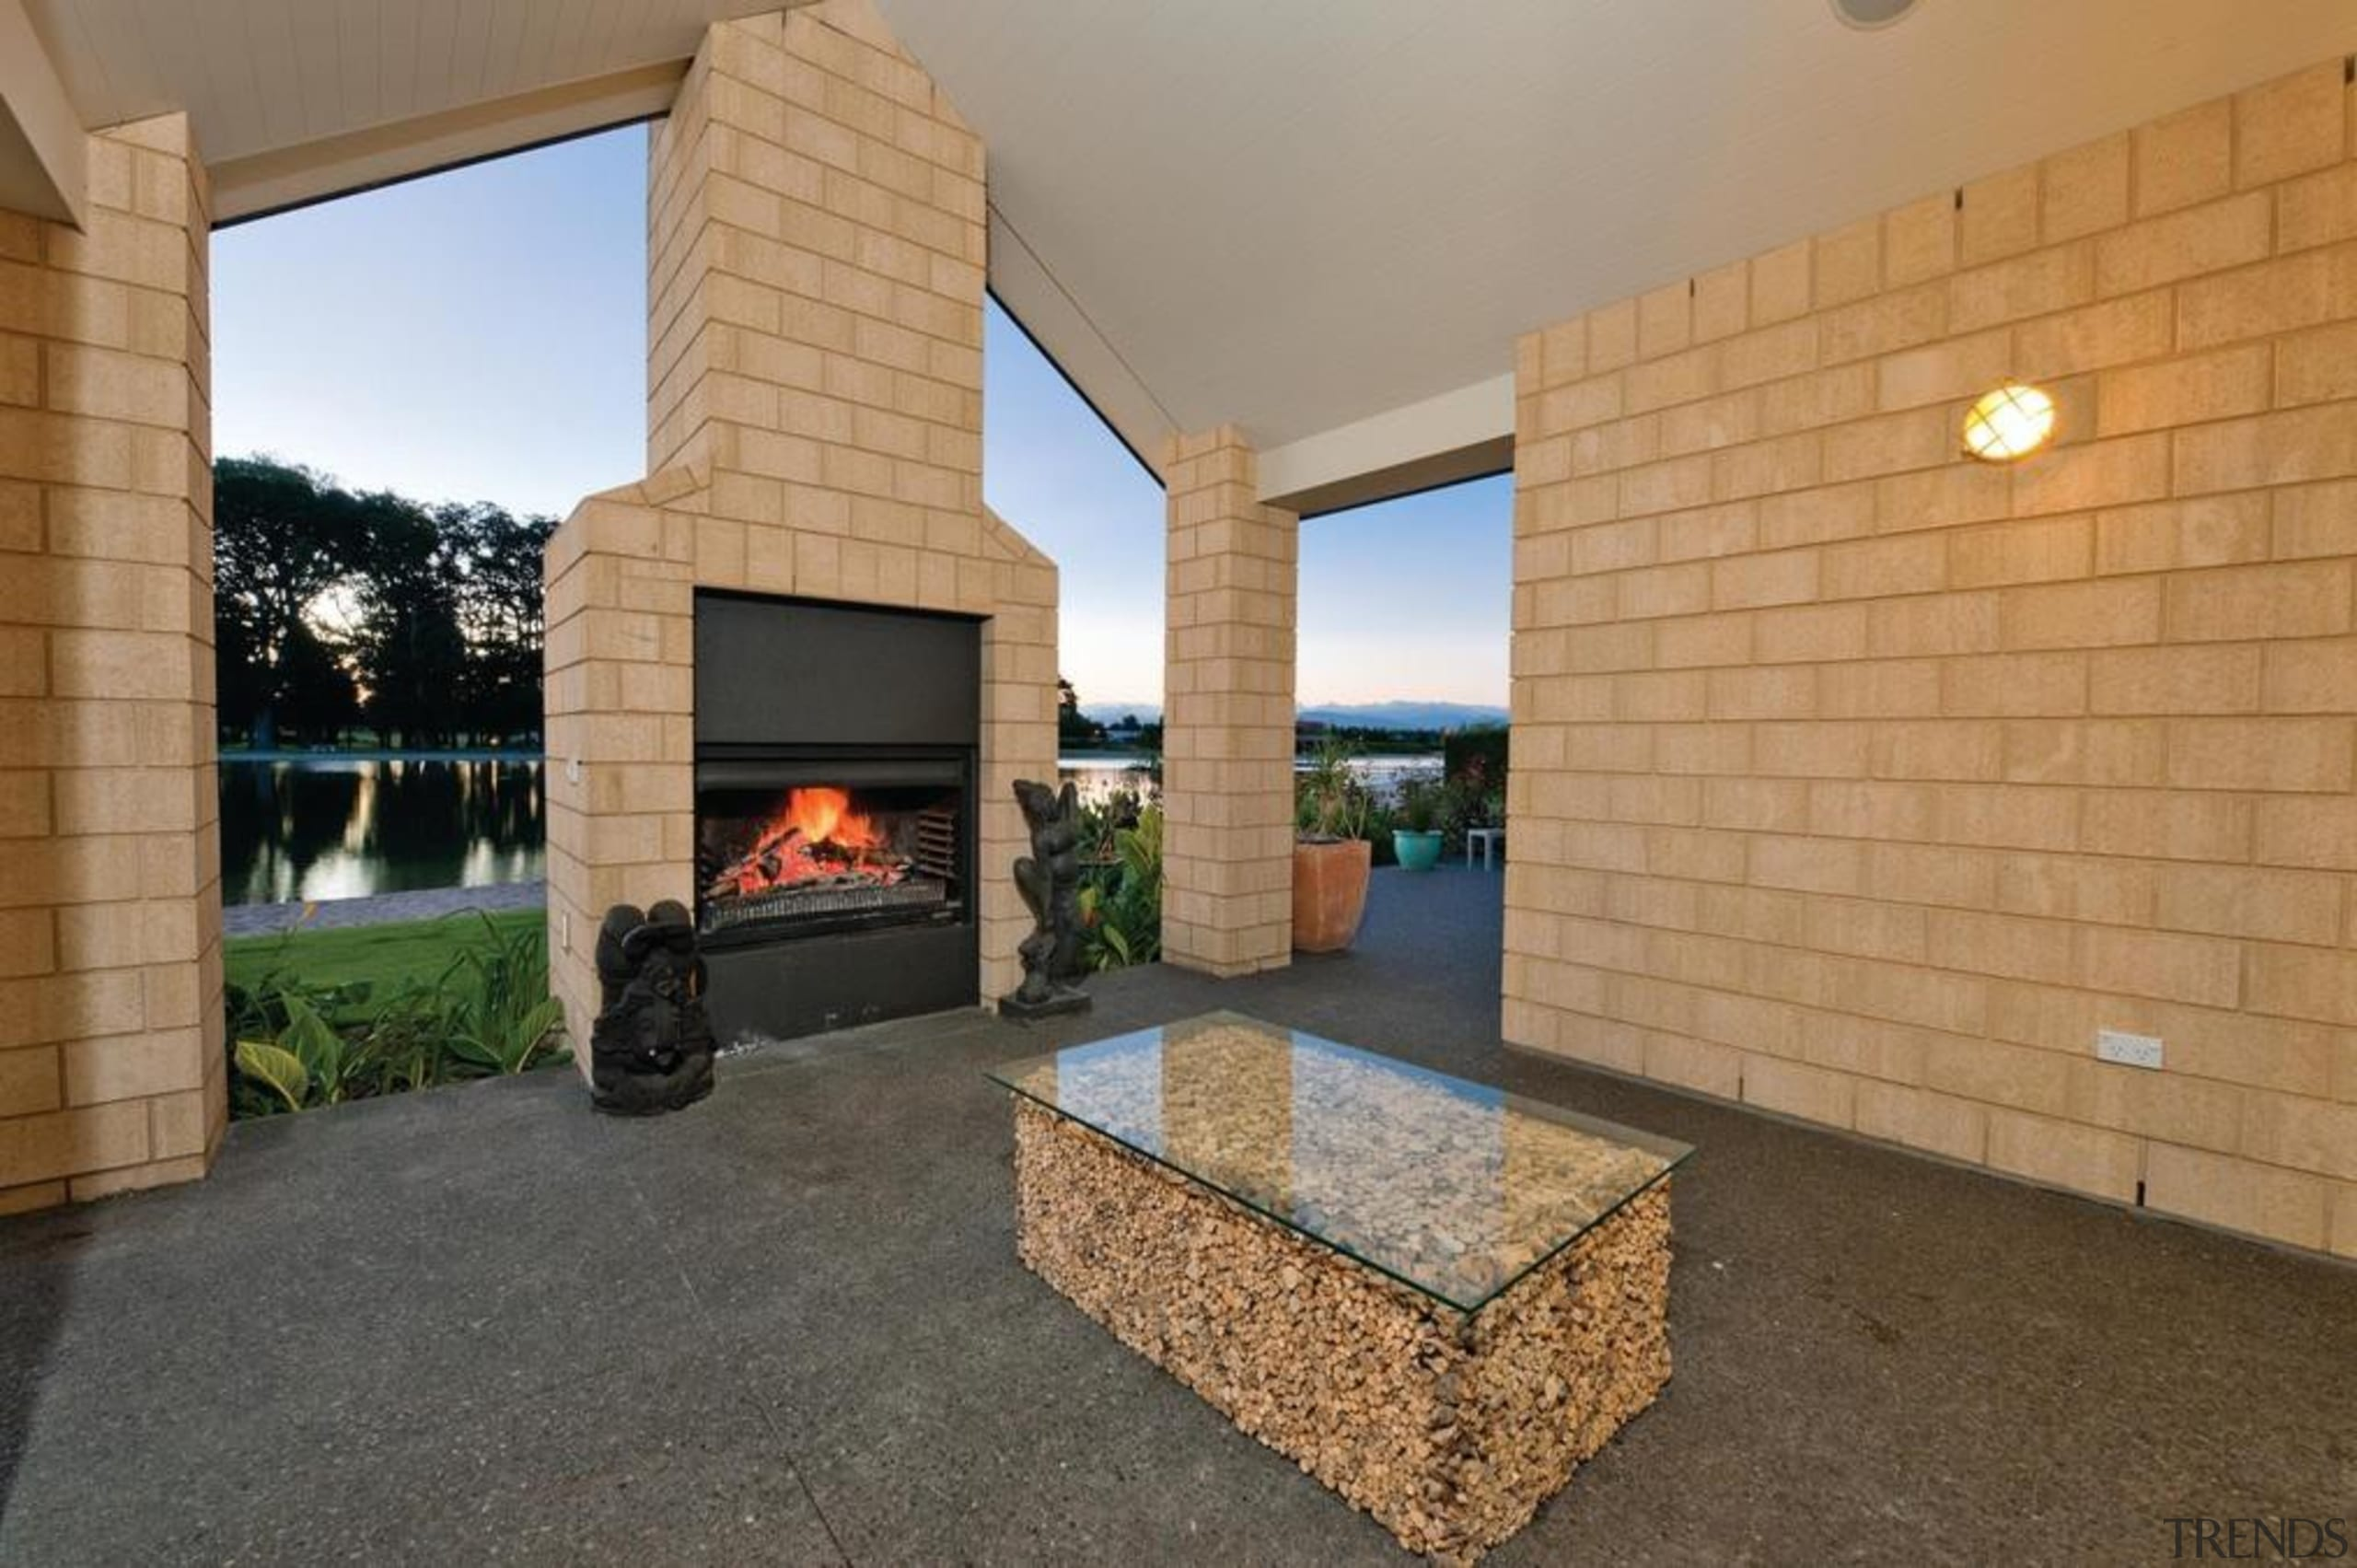 1. Bricks are a natural product and as estate, fireplace, interior design, living room, property, real estate, orange, brown